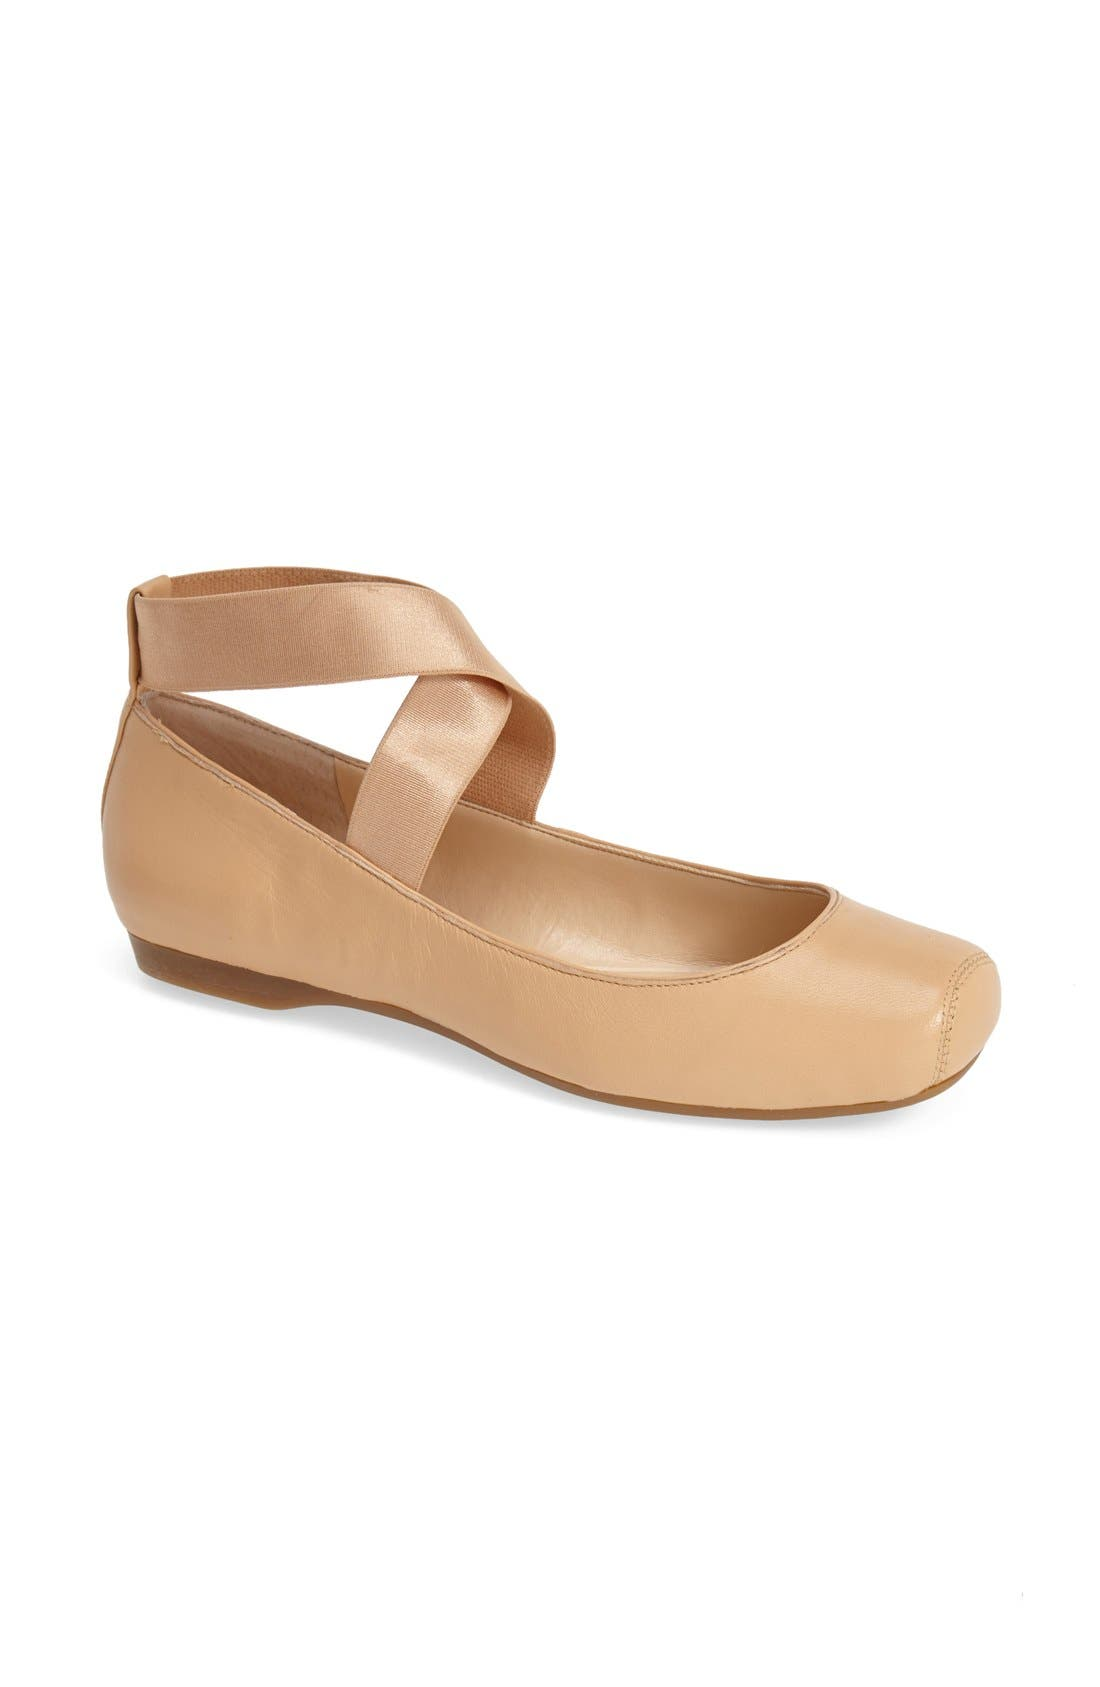 Main Image - Jessica Simpson 'Mandalaye' Leather Flat